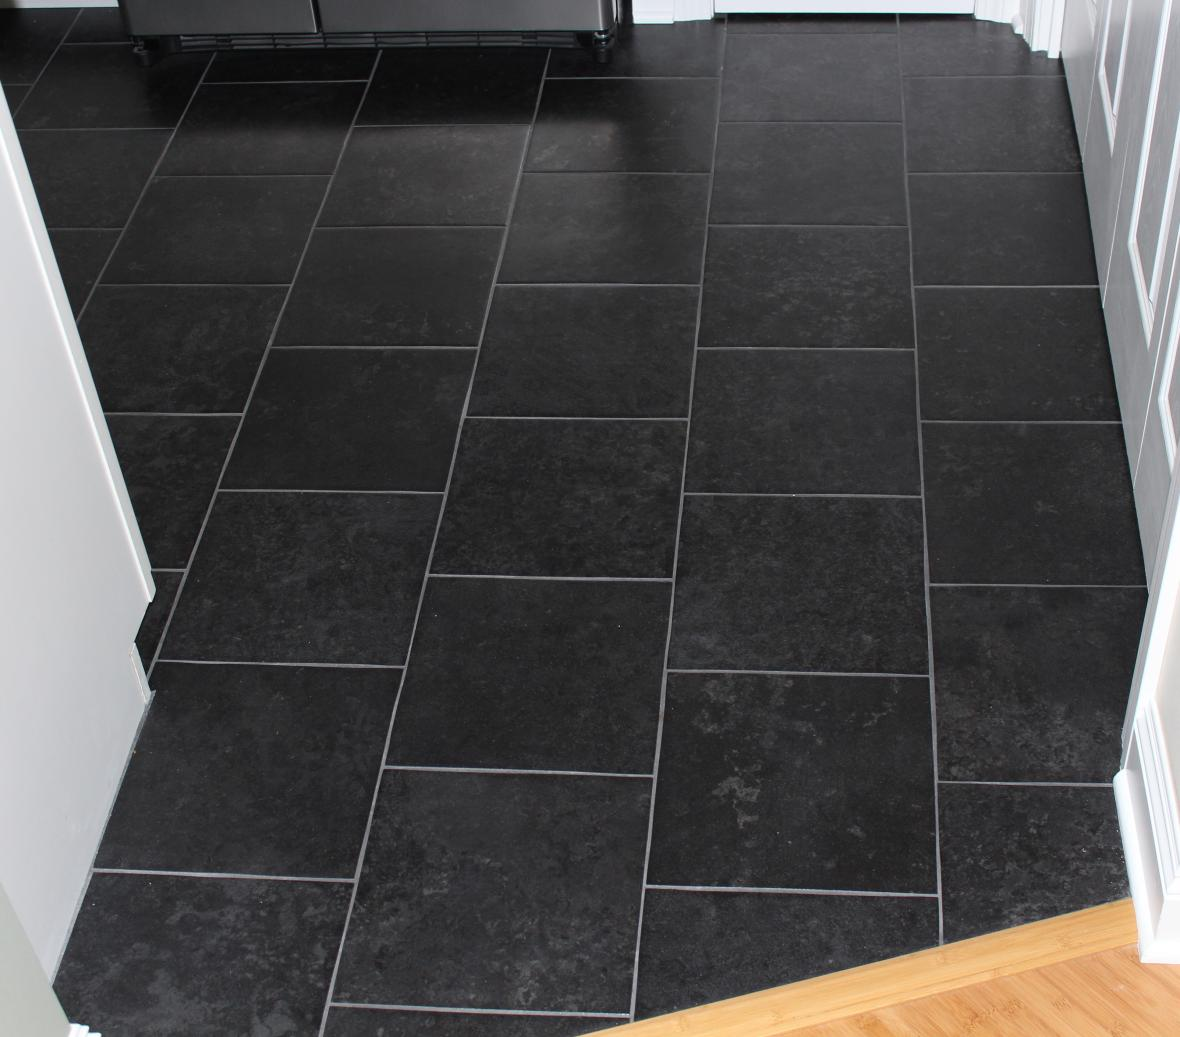 4 black floor tiles glitter black ceramic floor tiles 300 x 300 black porcelain floor tile 60 x 60cm black white ceramic floor tile black porcelain floor tiles wickes black floor tile with silver 23174